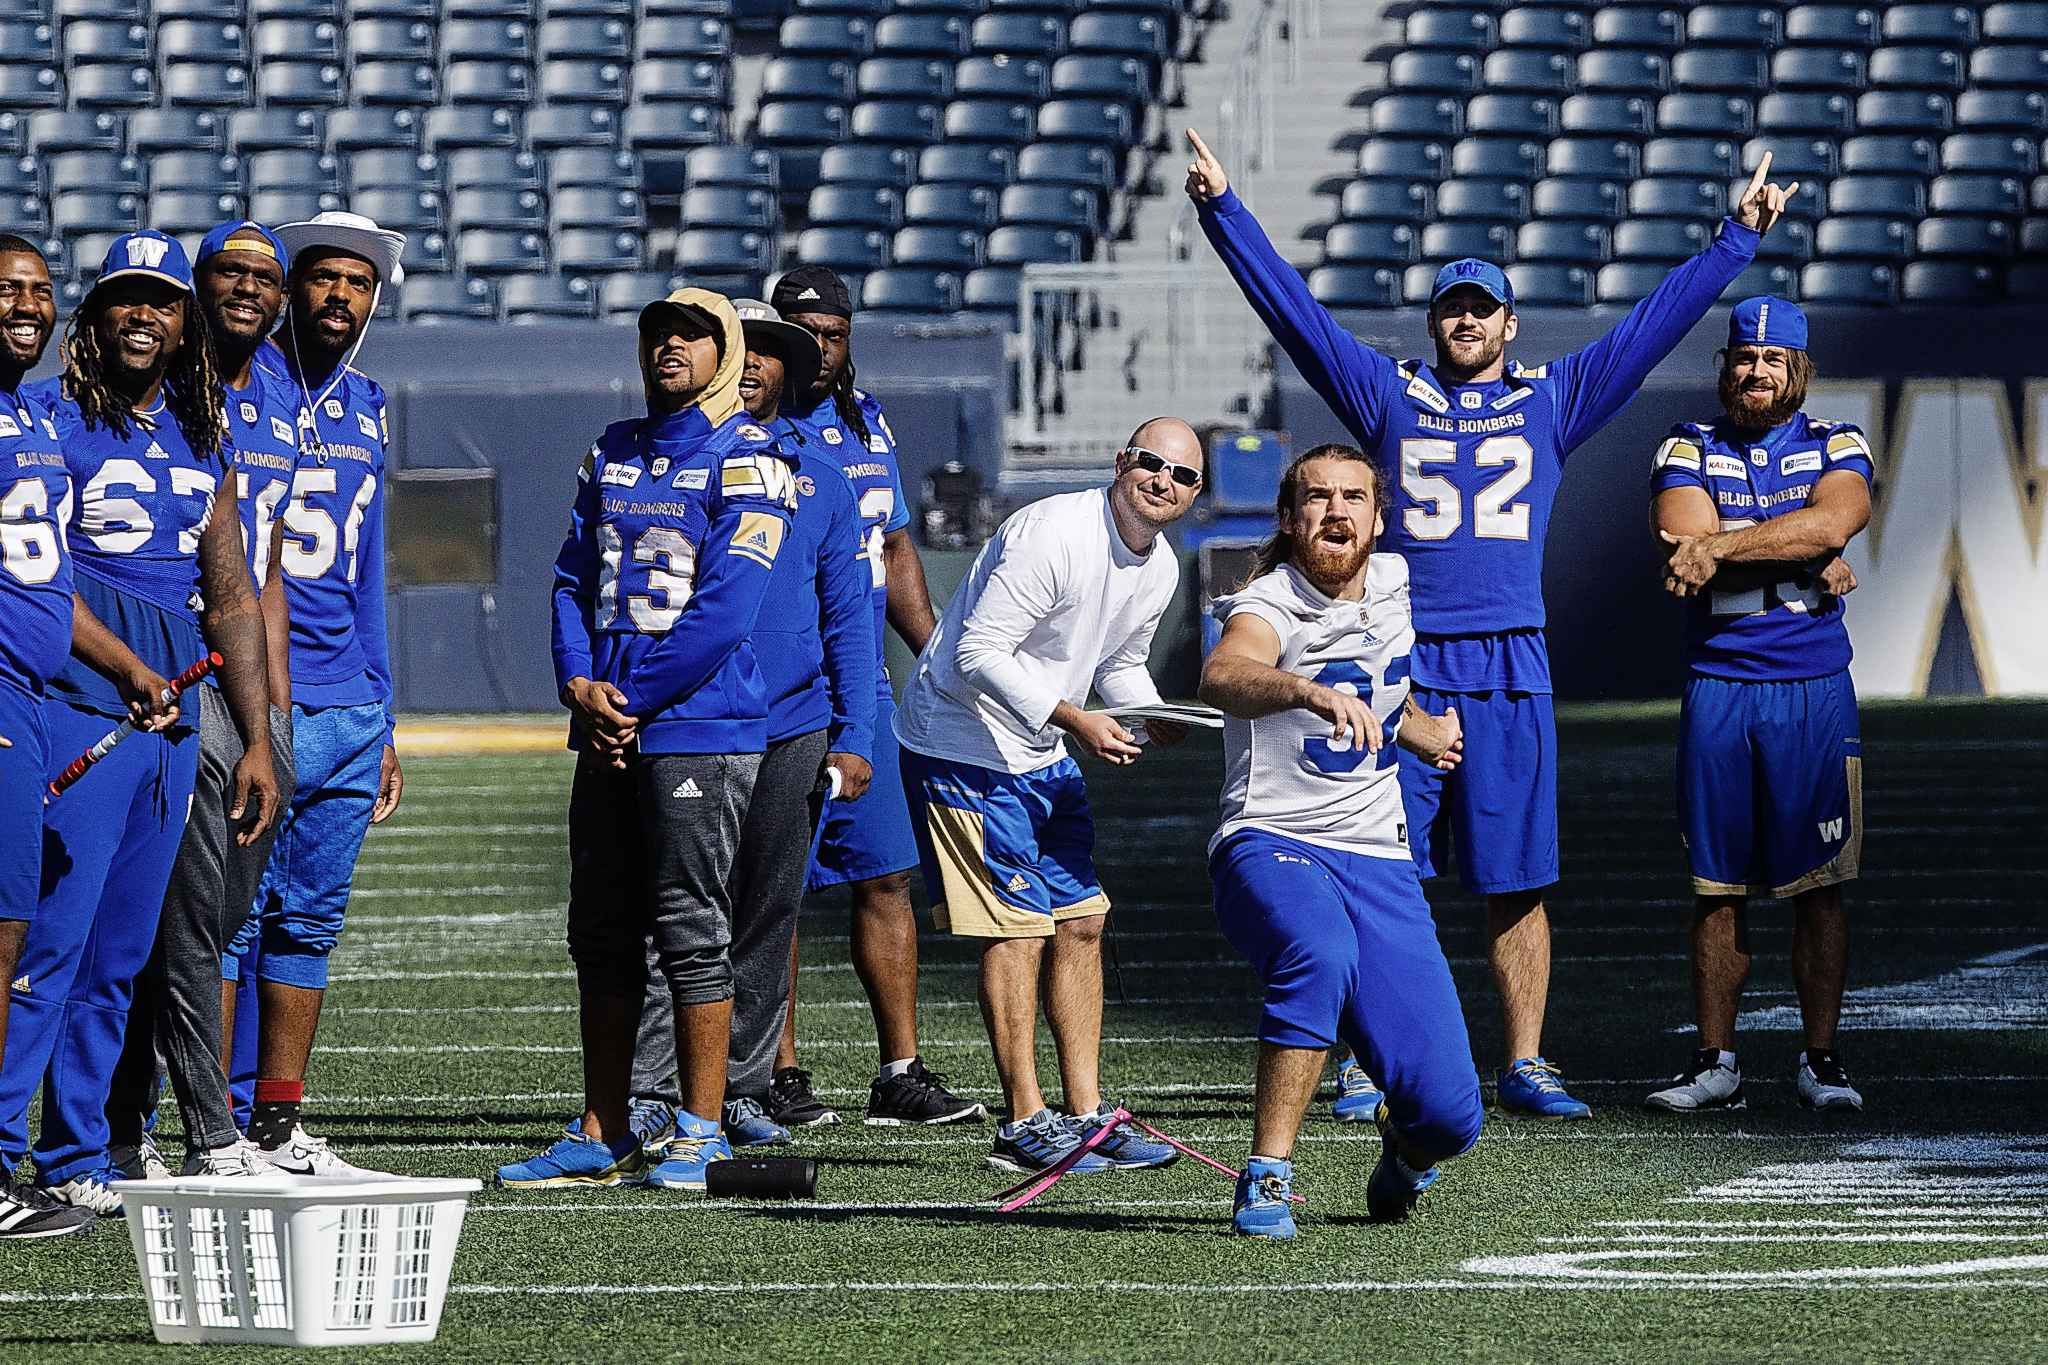 Winnipeg Blue Bombers' full-back John Rush (32) kicks a field goal from the 35 yard line during practice at Investors Group Field Friday morning.  180907 - Friday, September 07, 2018.